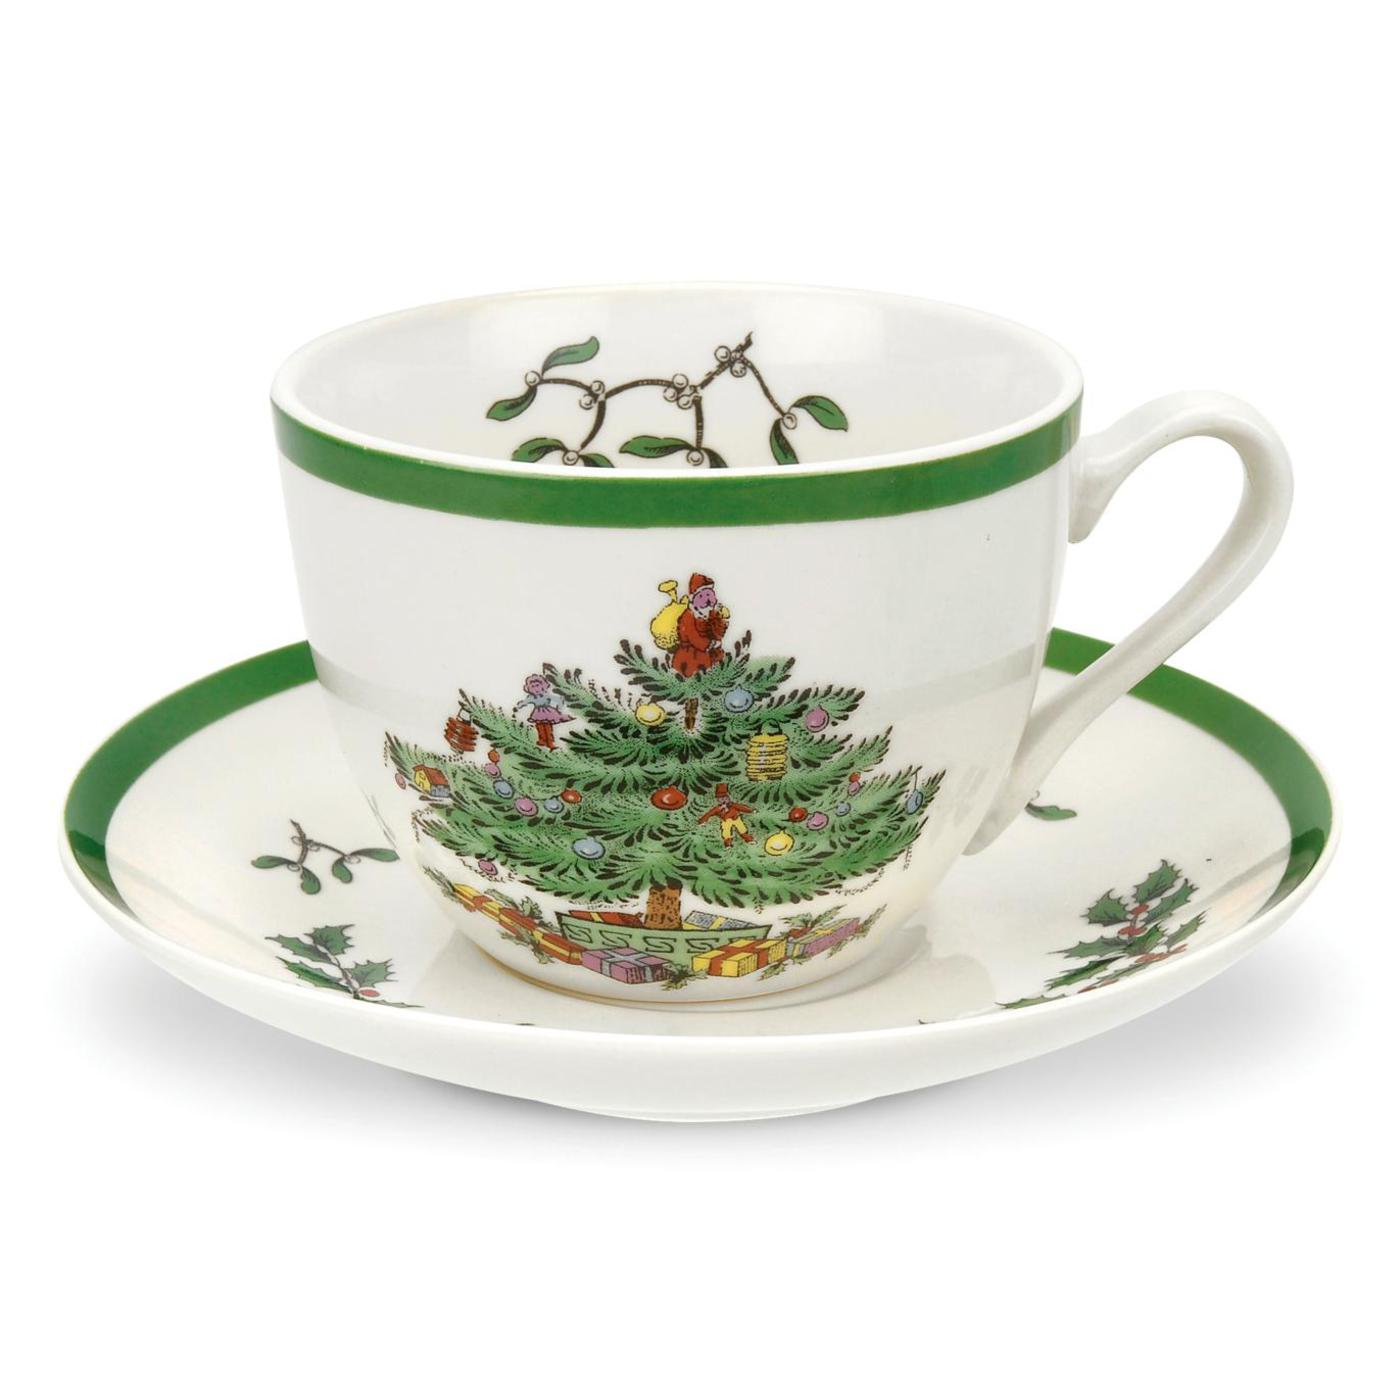 Spode Christmas Tree Teacup   image number 0